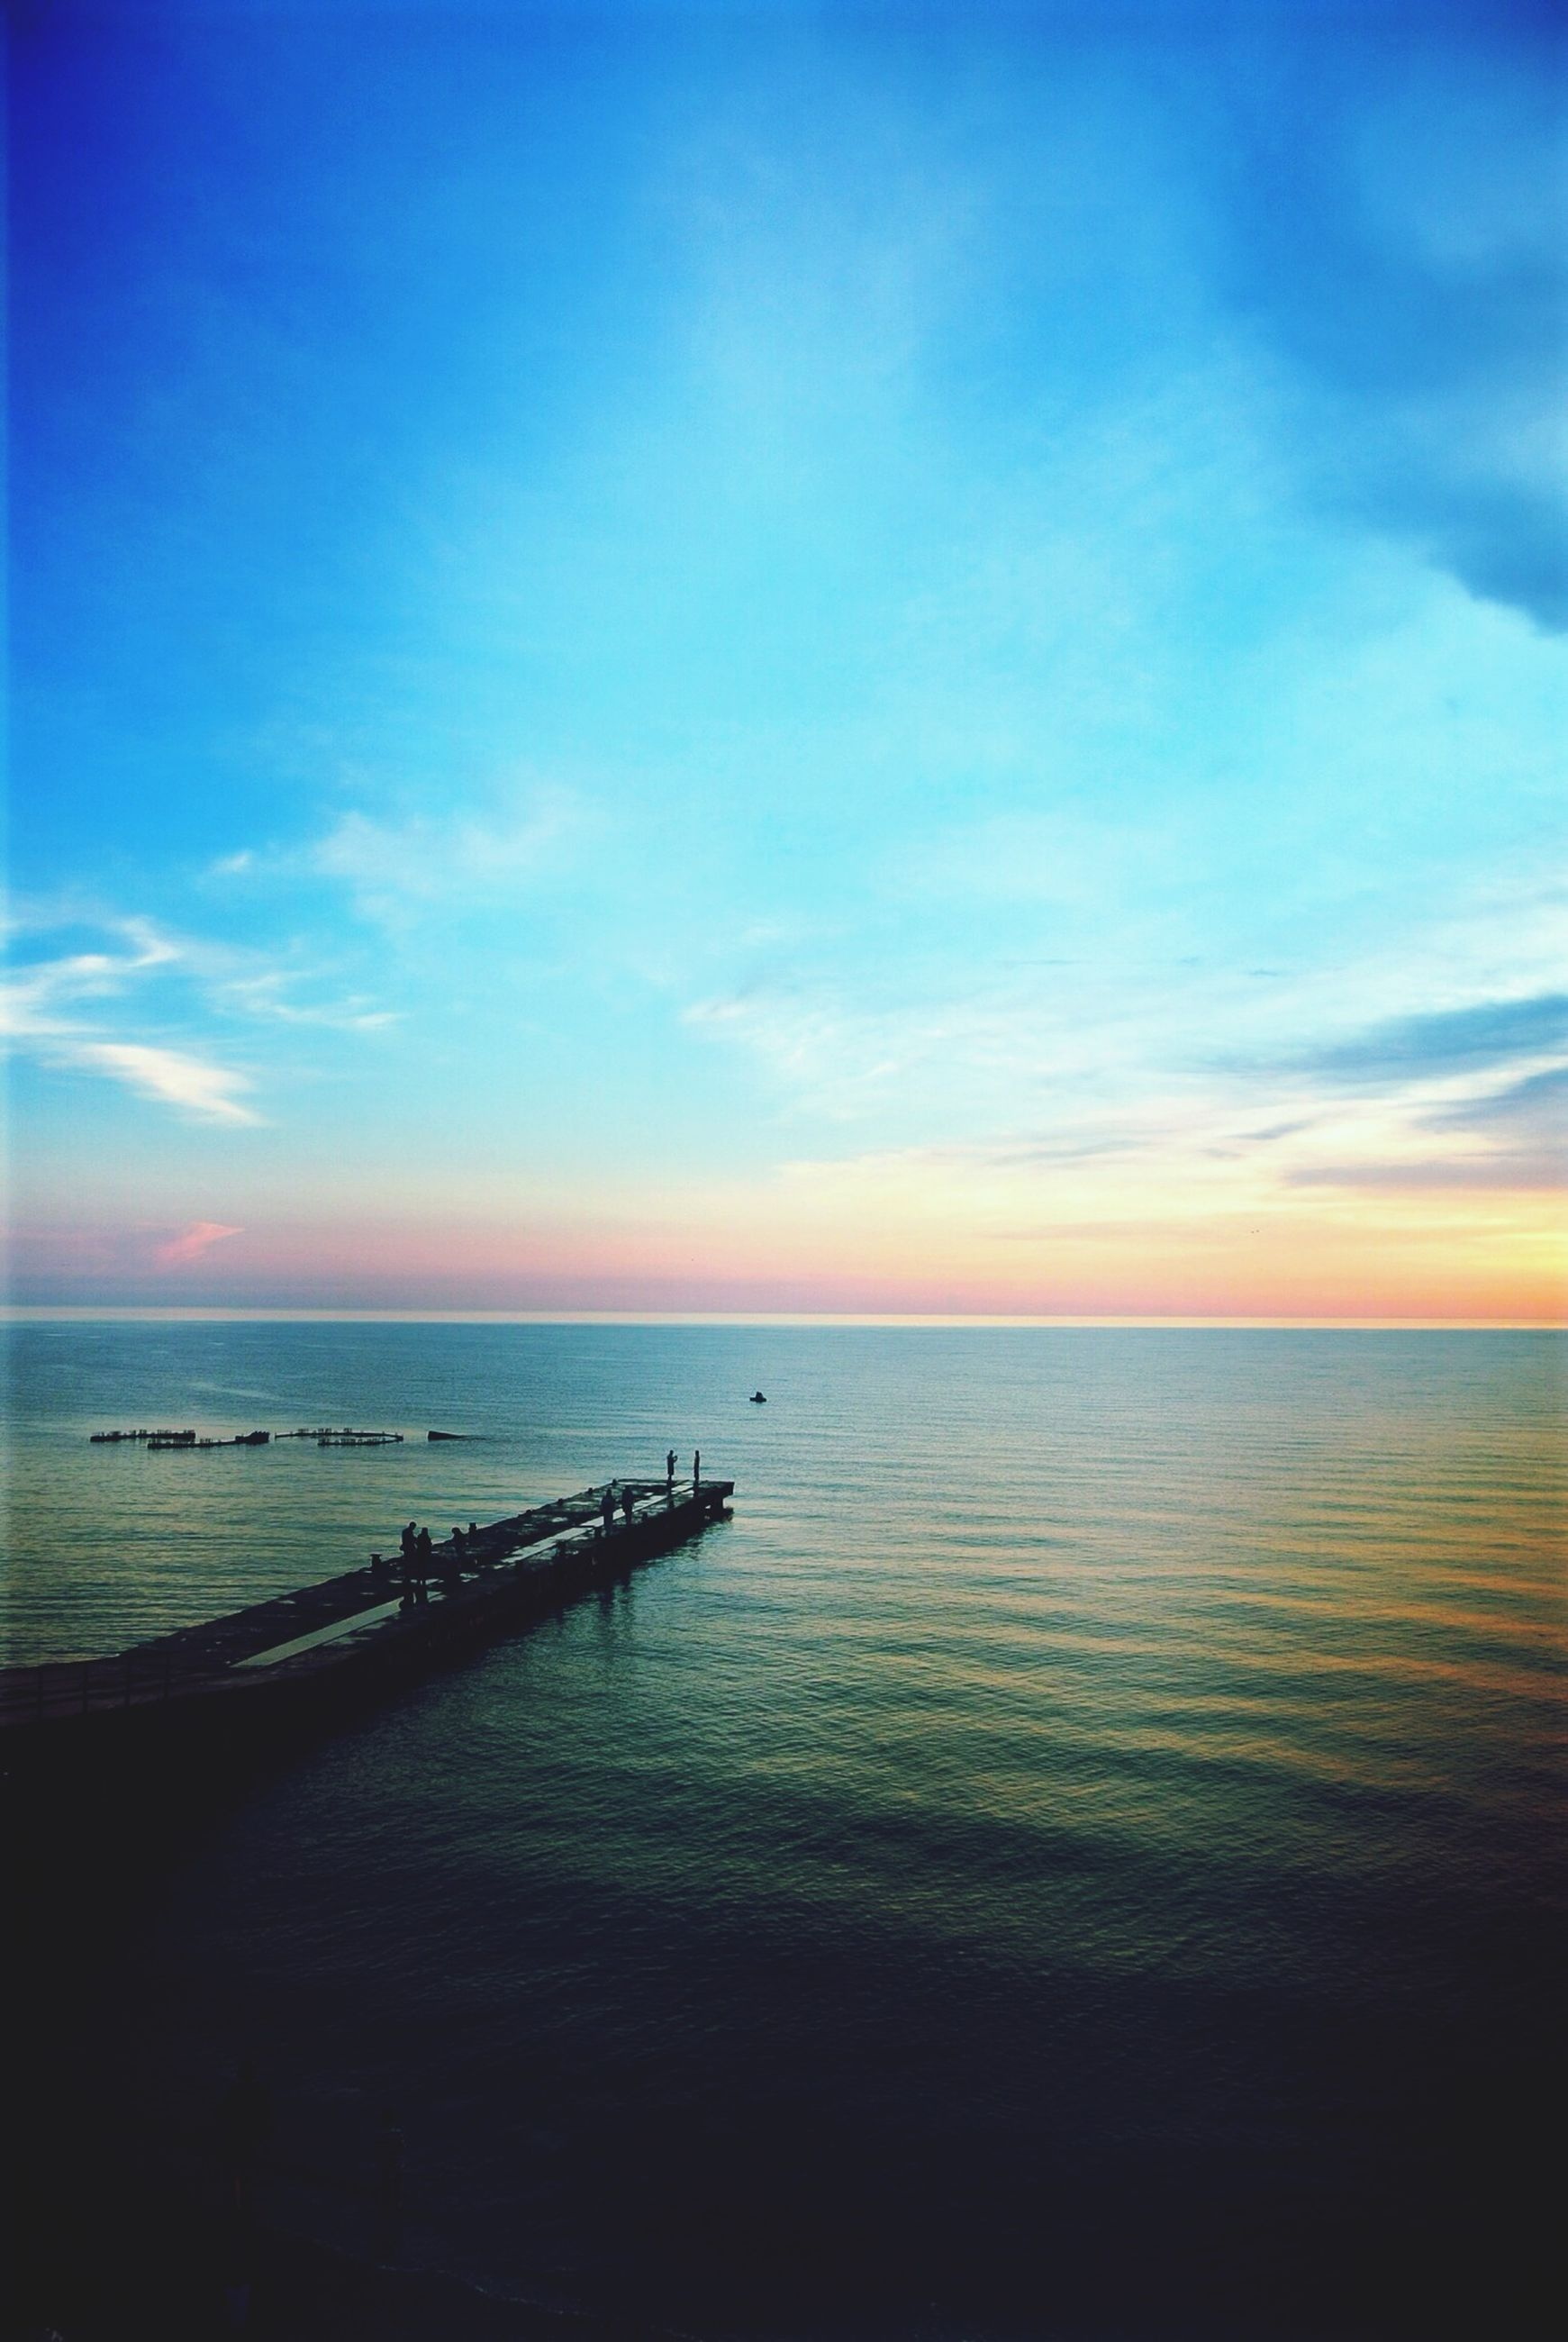 sea, horizon over water, water, tranquil scene, sky, scenics, tranquility, beauty in nature, sunset, beach, nature, idyllic, blue, cloud - sky, shore, cloud, calm, outdoors, seascape, reflection